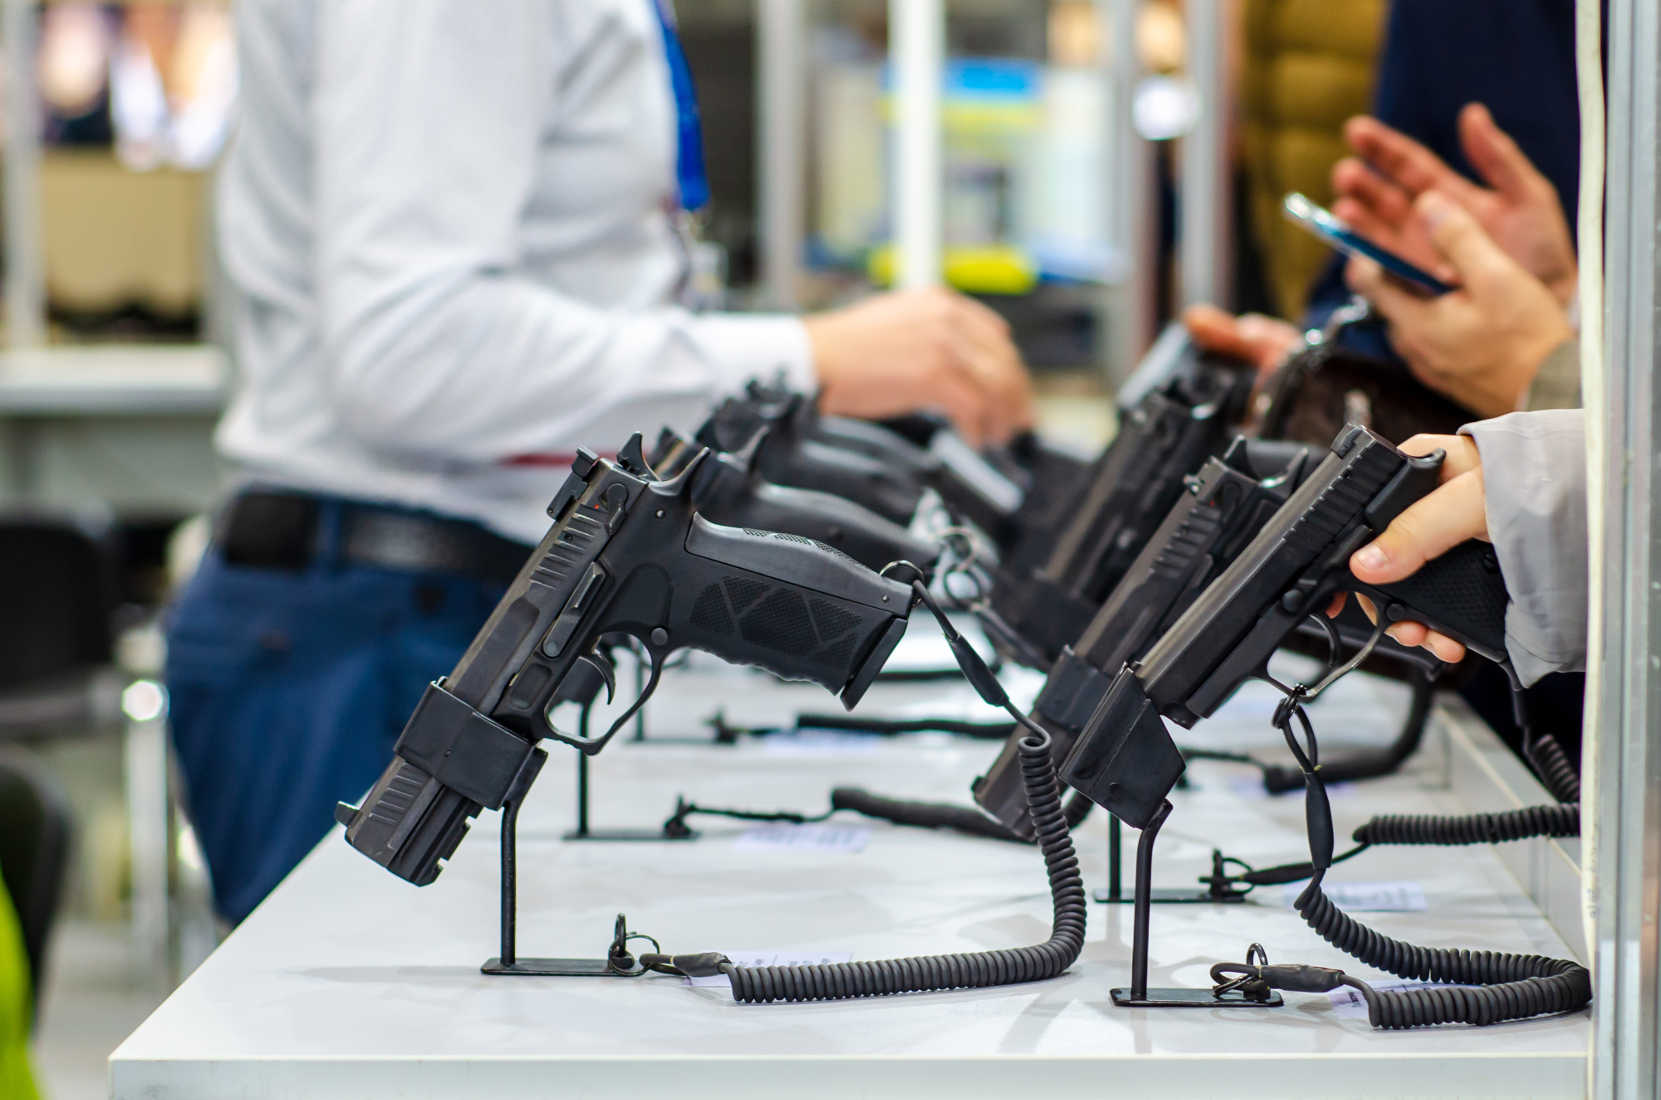 STUDY: Age Restrictions on Guns Aren't Working to Stop Homicides